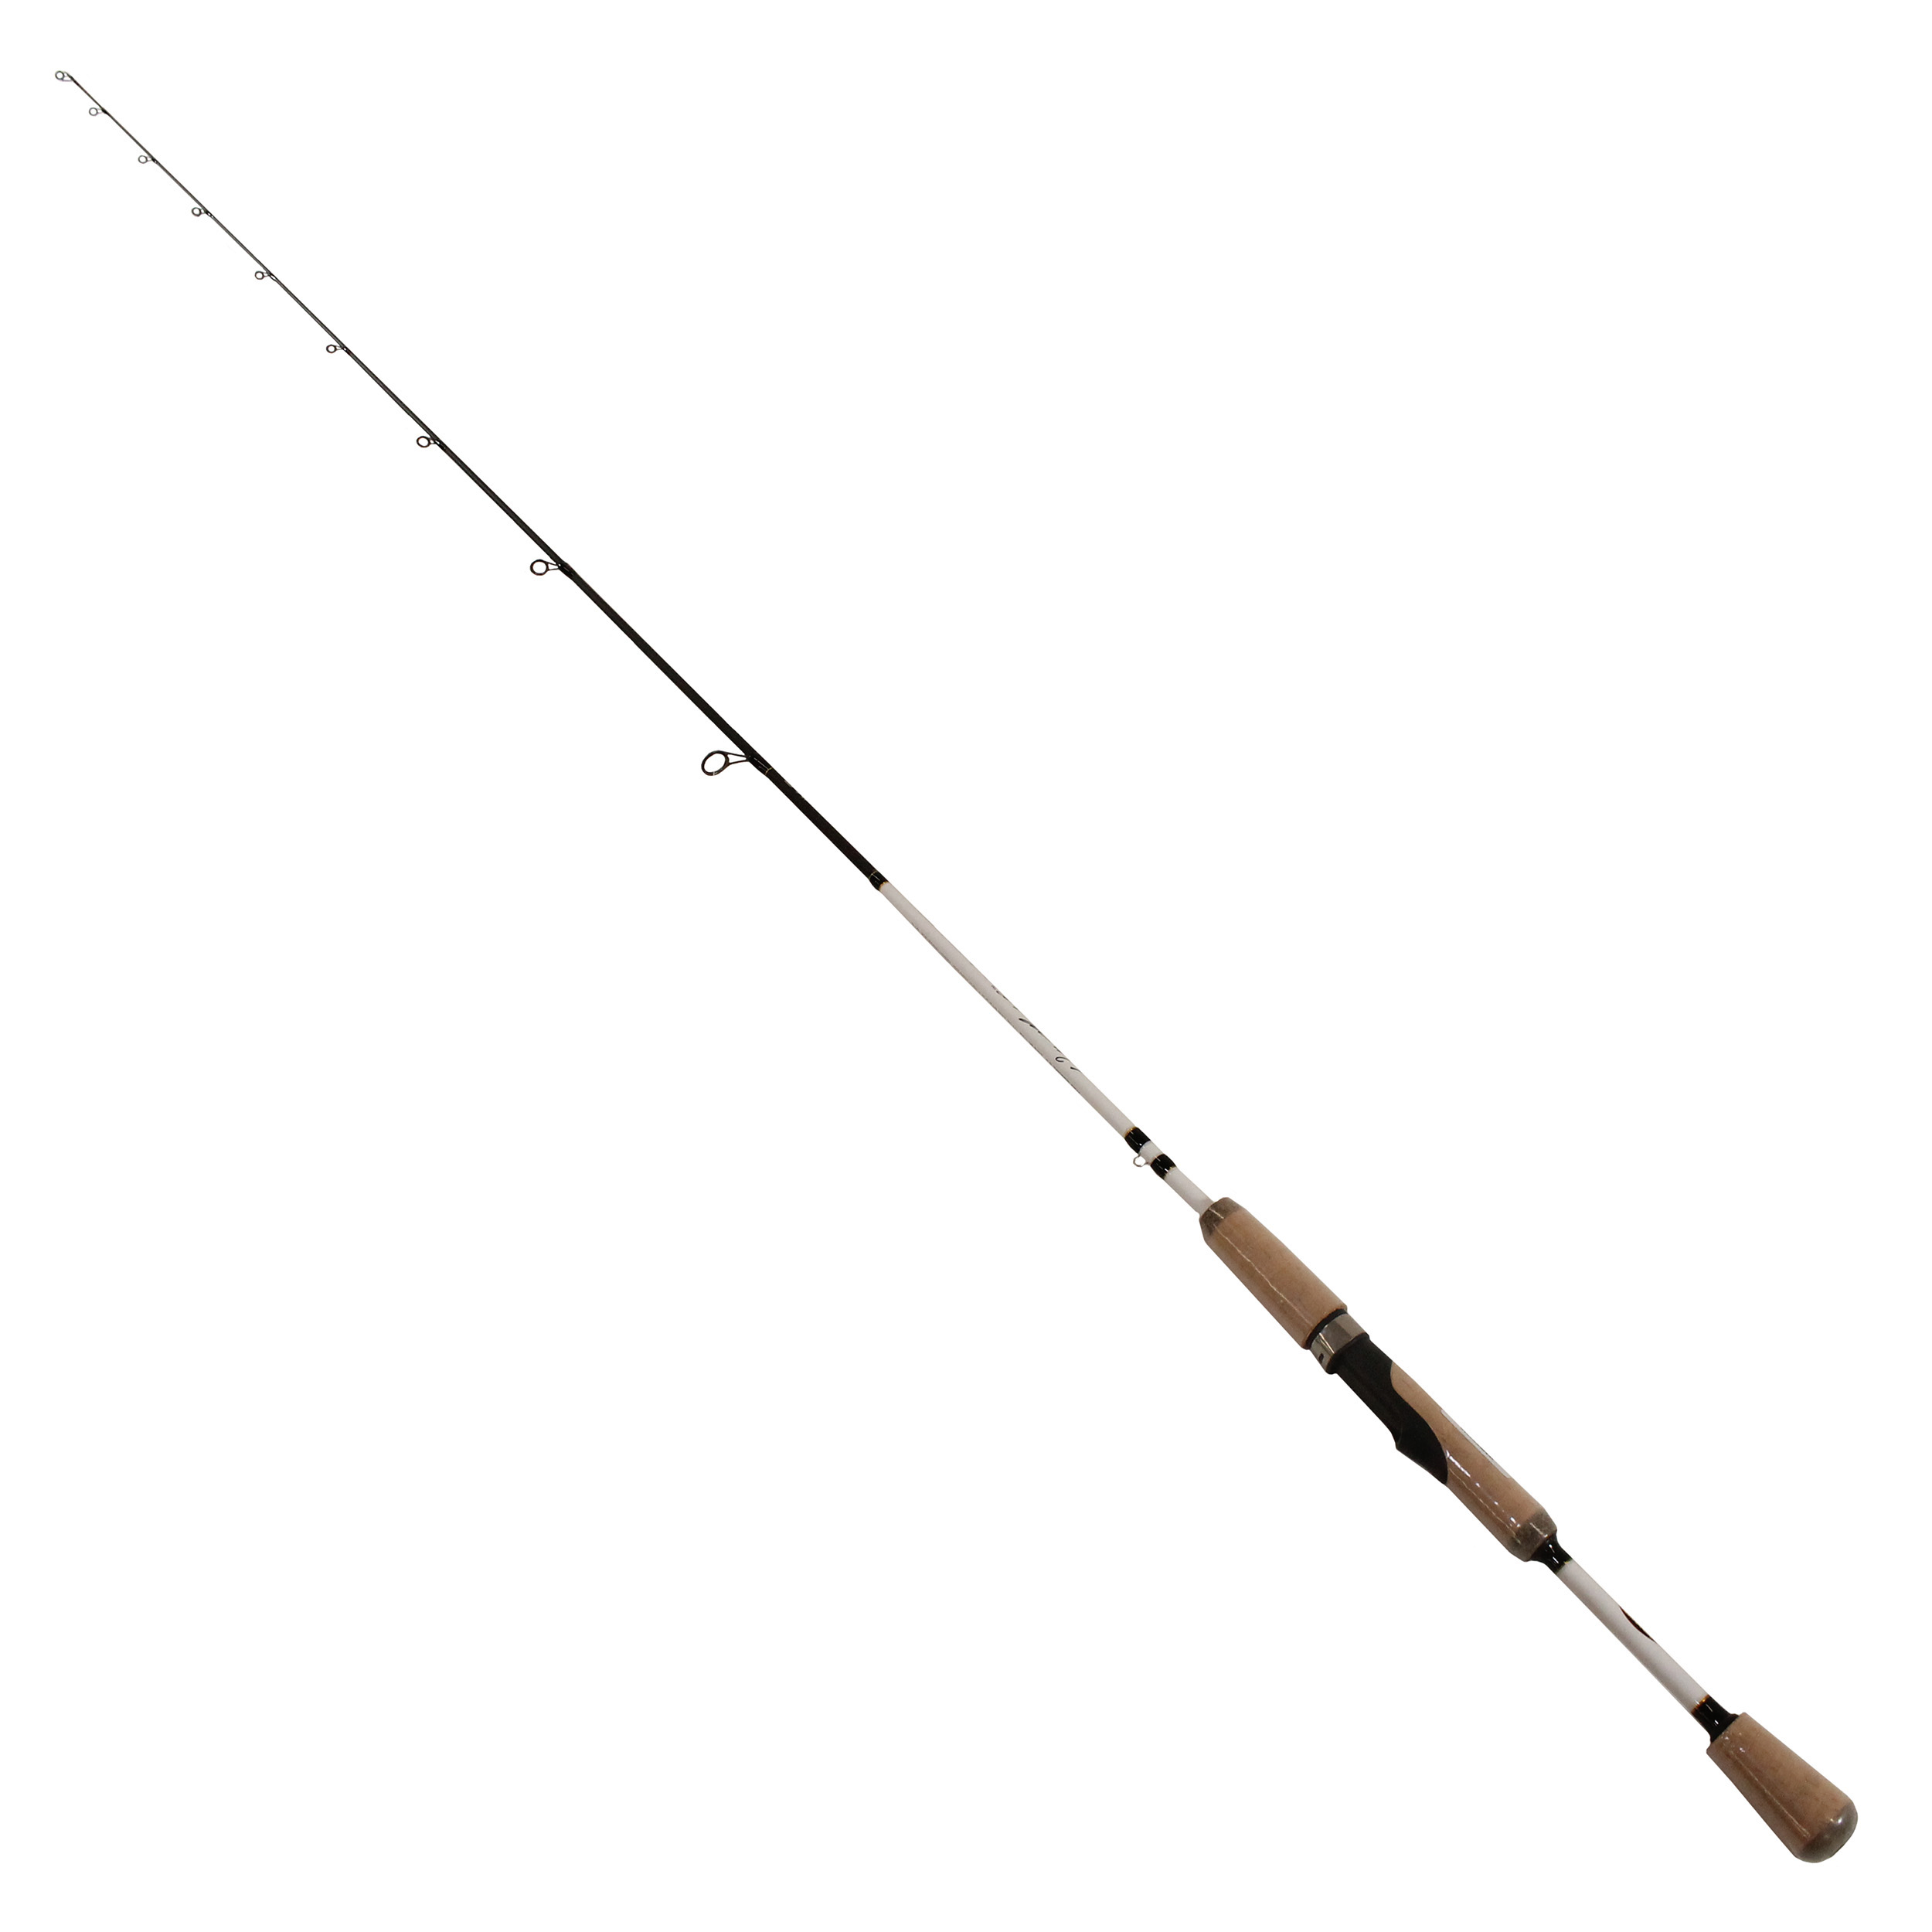 Lews Fishing Wally Marshall Pro Rod 6'6